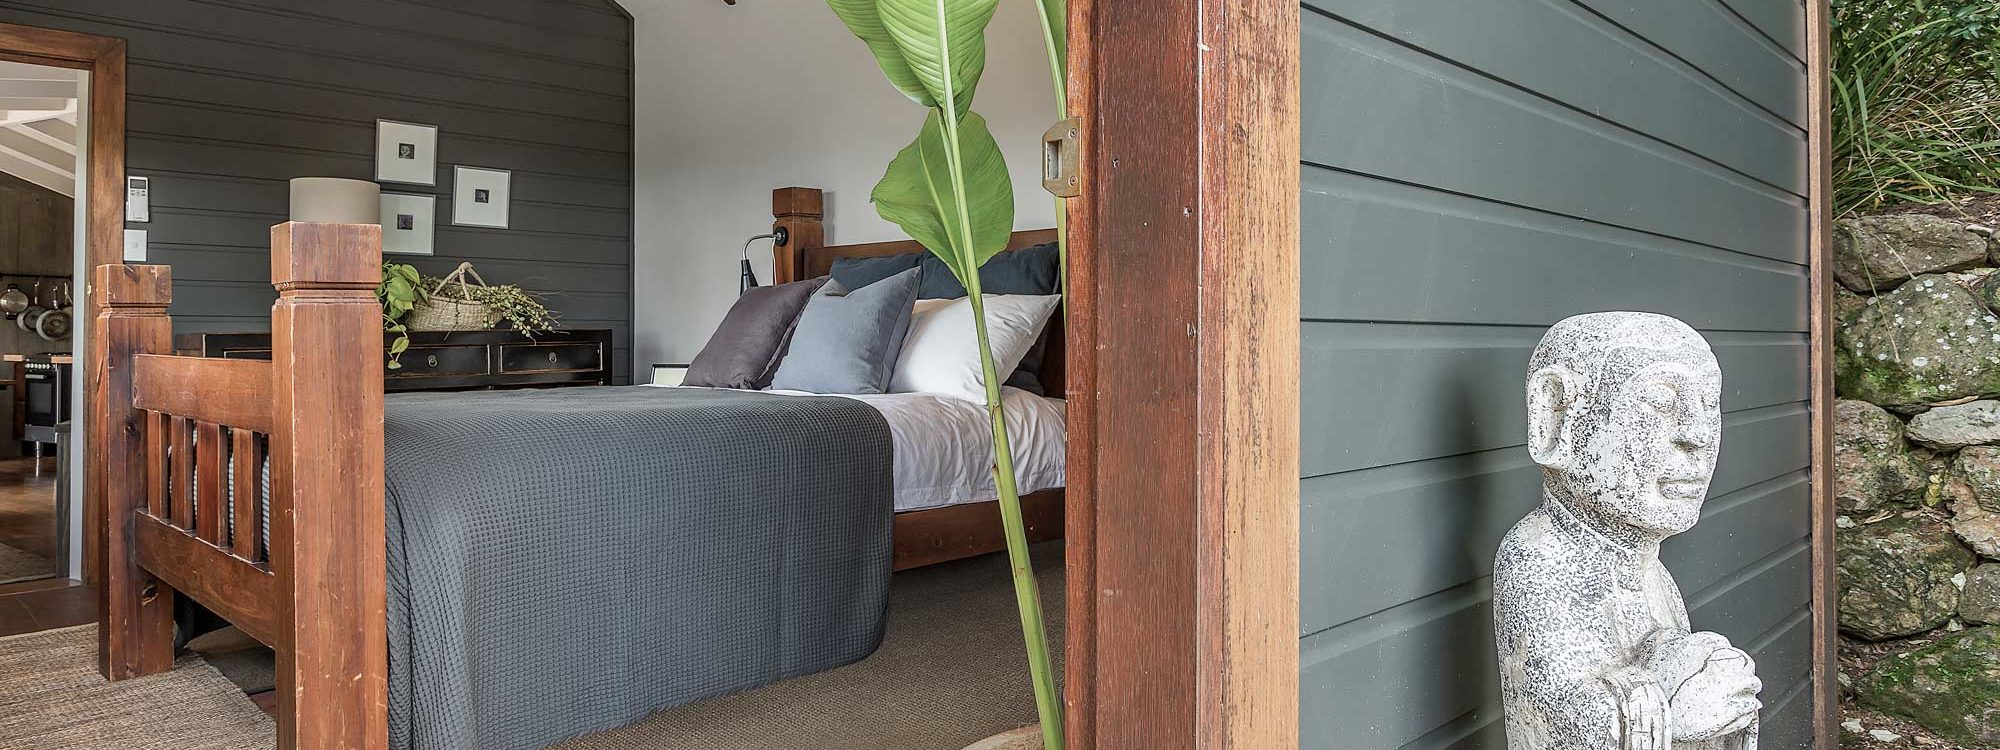 Eastern Rise Studio - Byron Bay Hinterland - Master Bedroom-2a